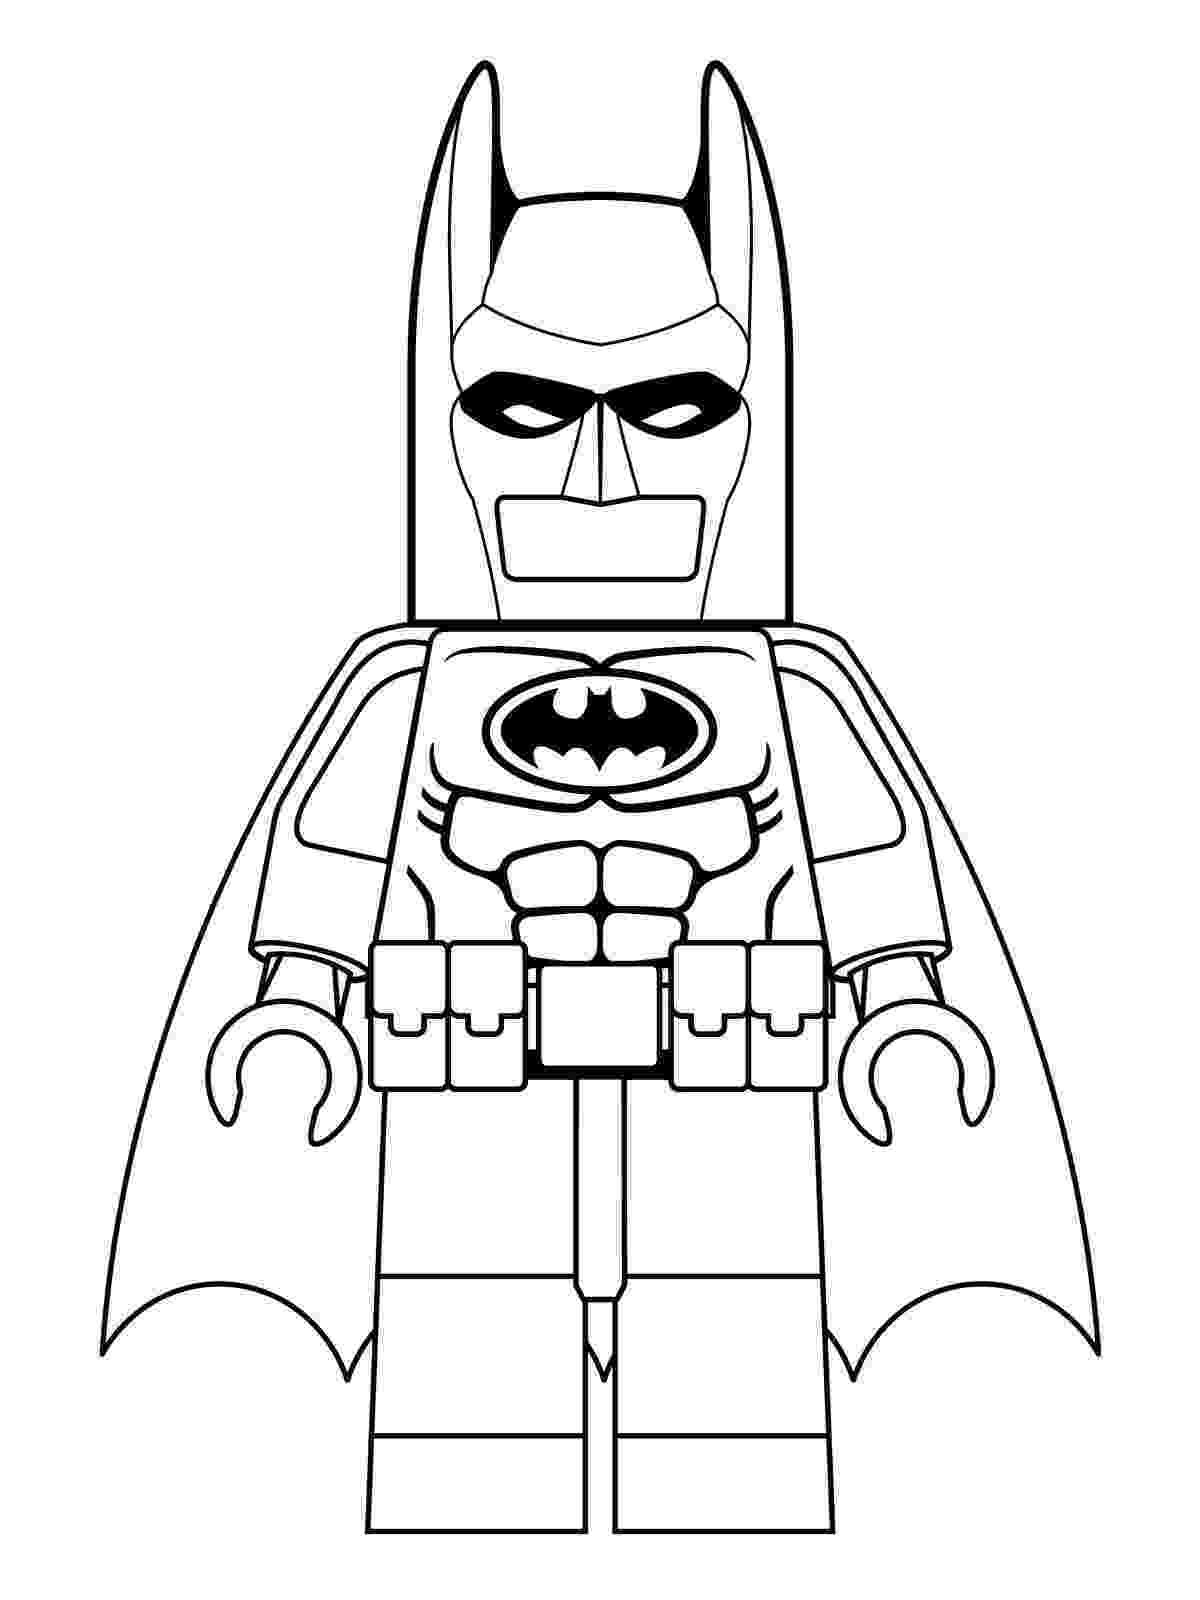 lego man printable lego coloring pages legomangif 24593310 pixels lego man printable lego